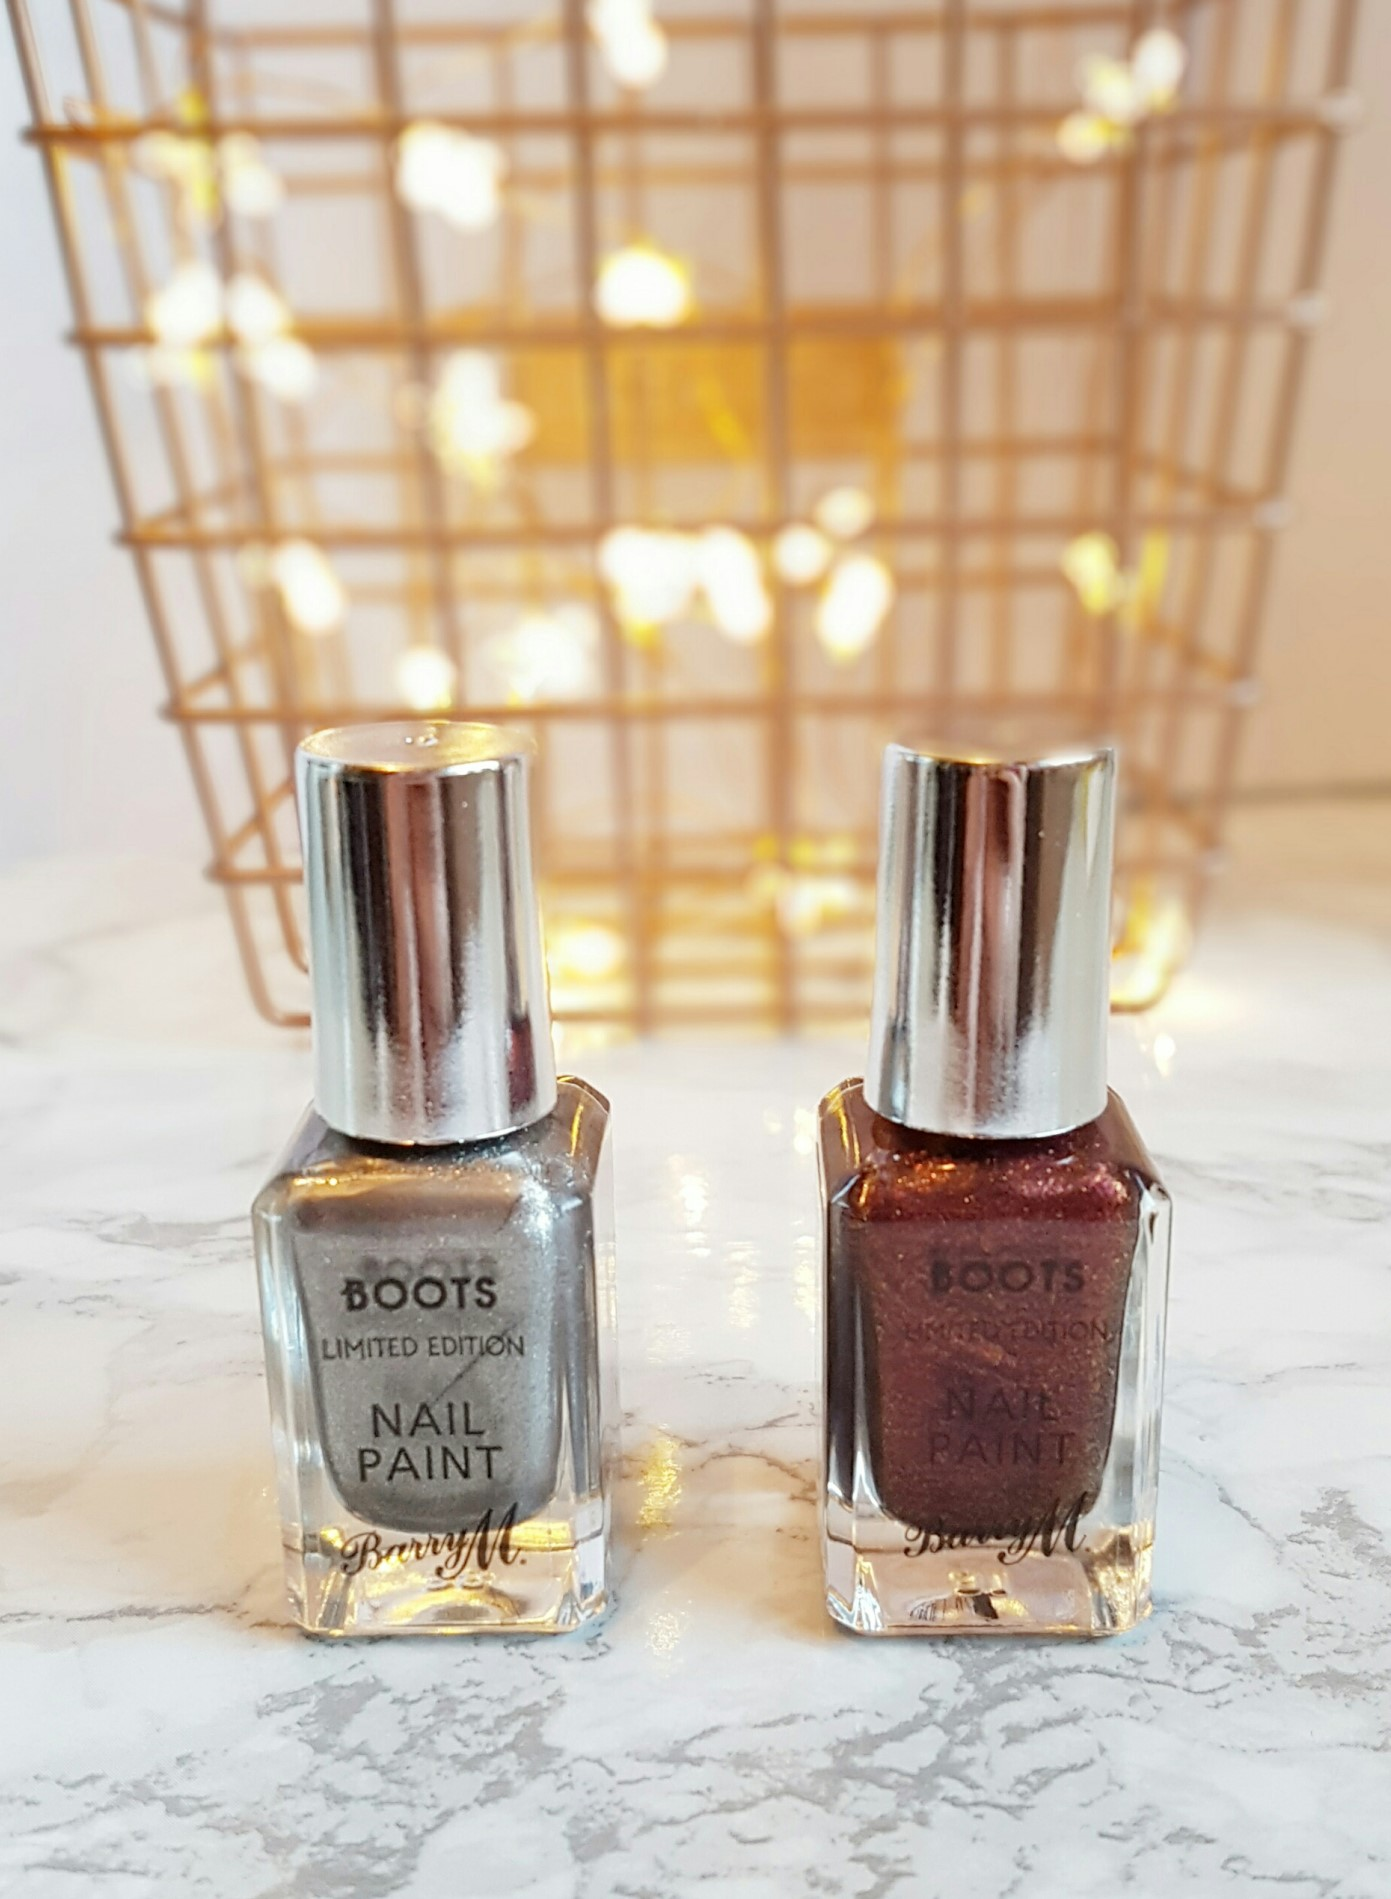 Boots Limited Edition Barry M Products | Nail Paint & Red Carpet Ready Palette